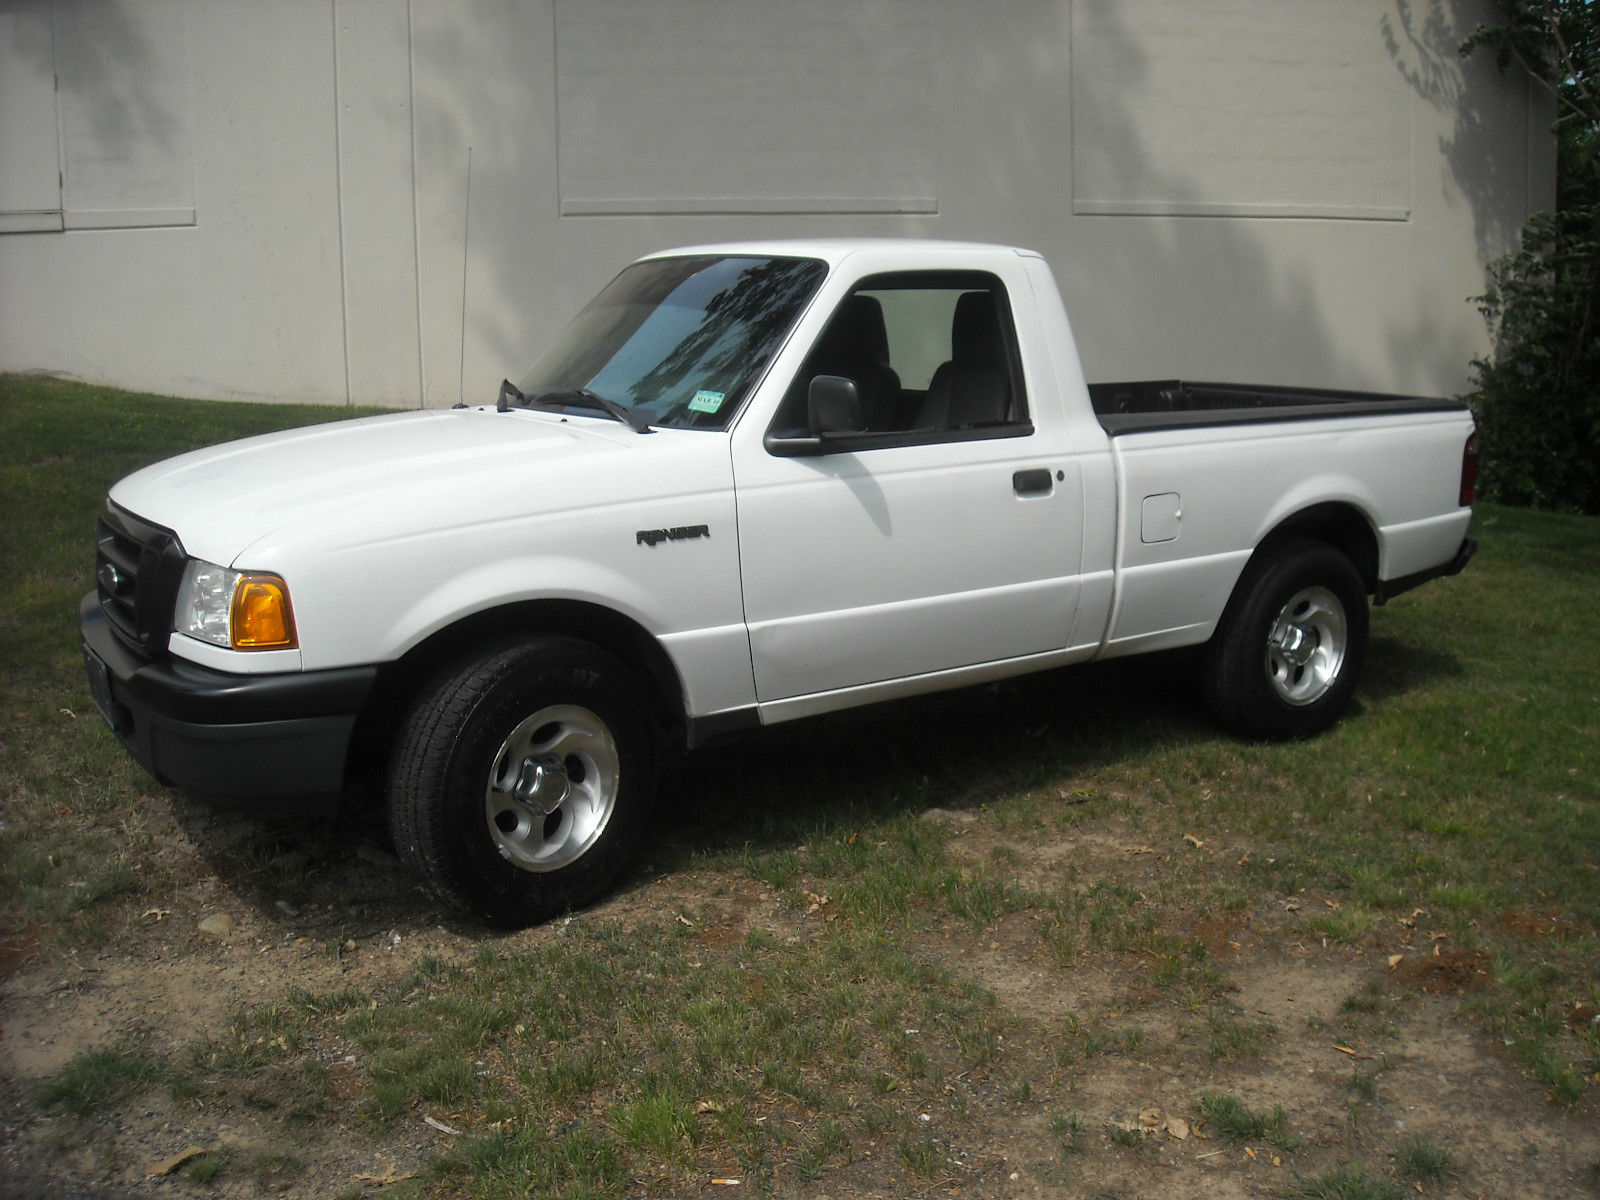 2004 ford ranger short bed 2 3 litre for sale. Black Bedroom Furniture Sets. Home Design Ideas